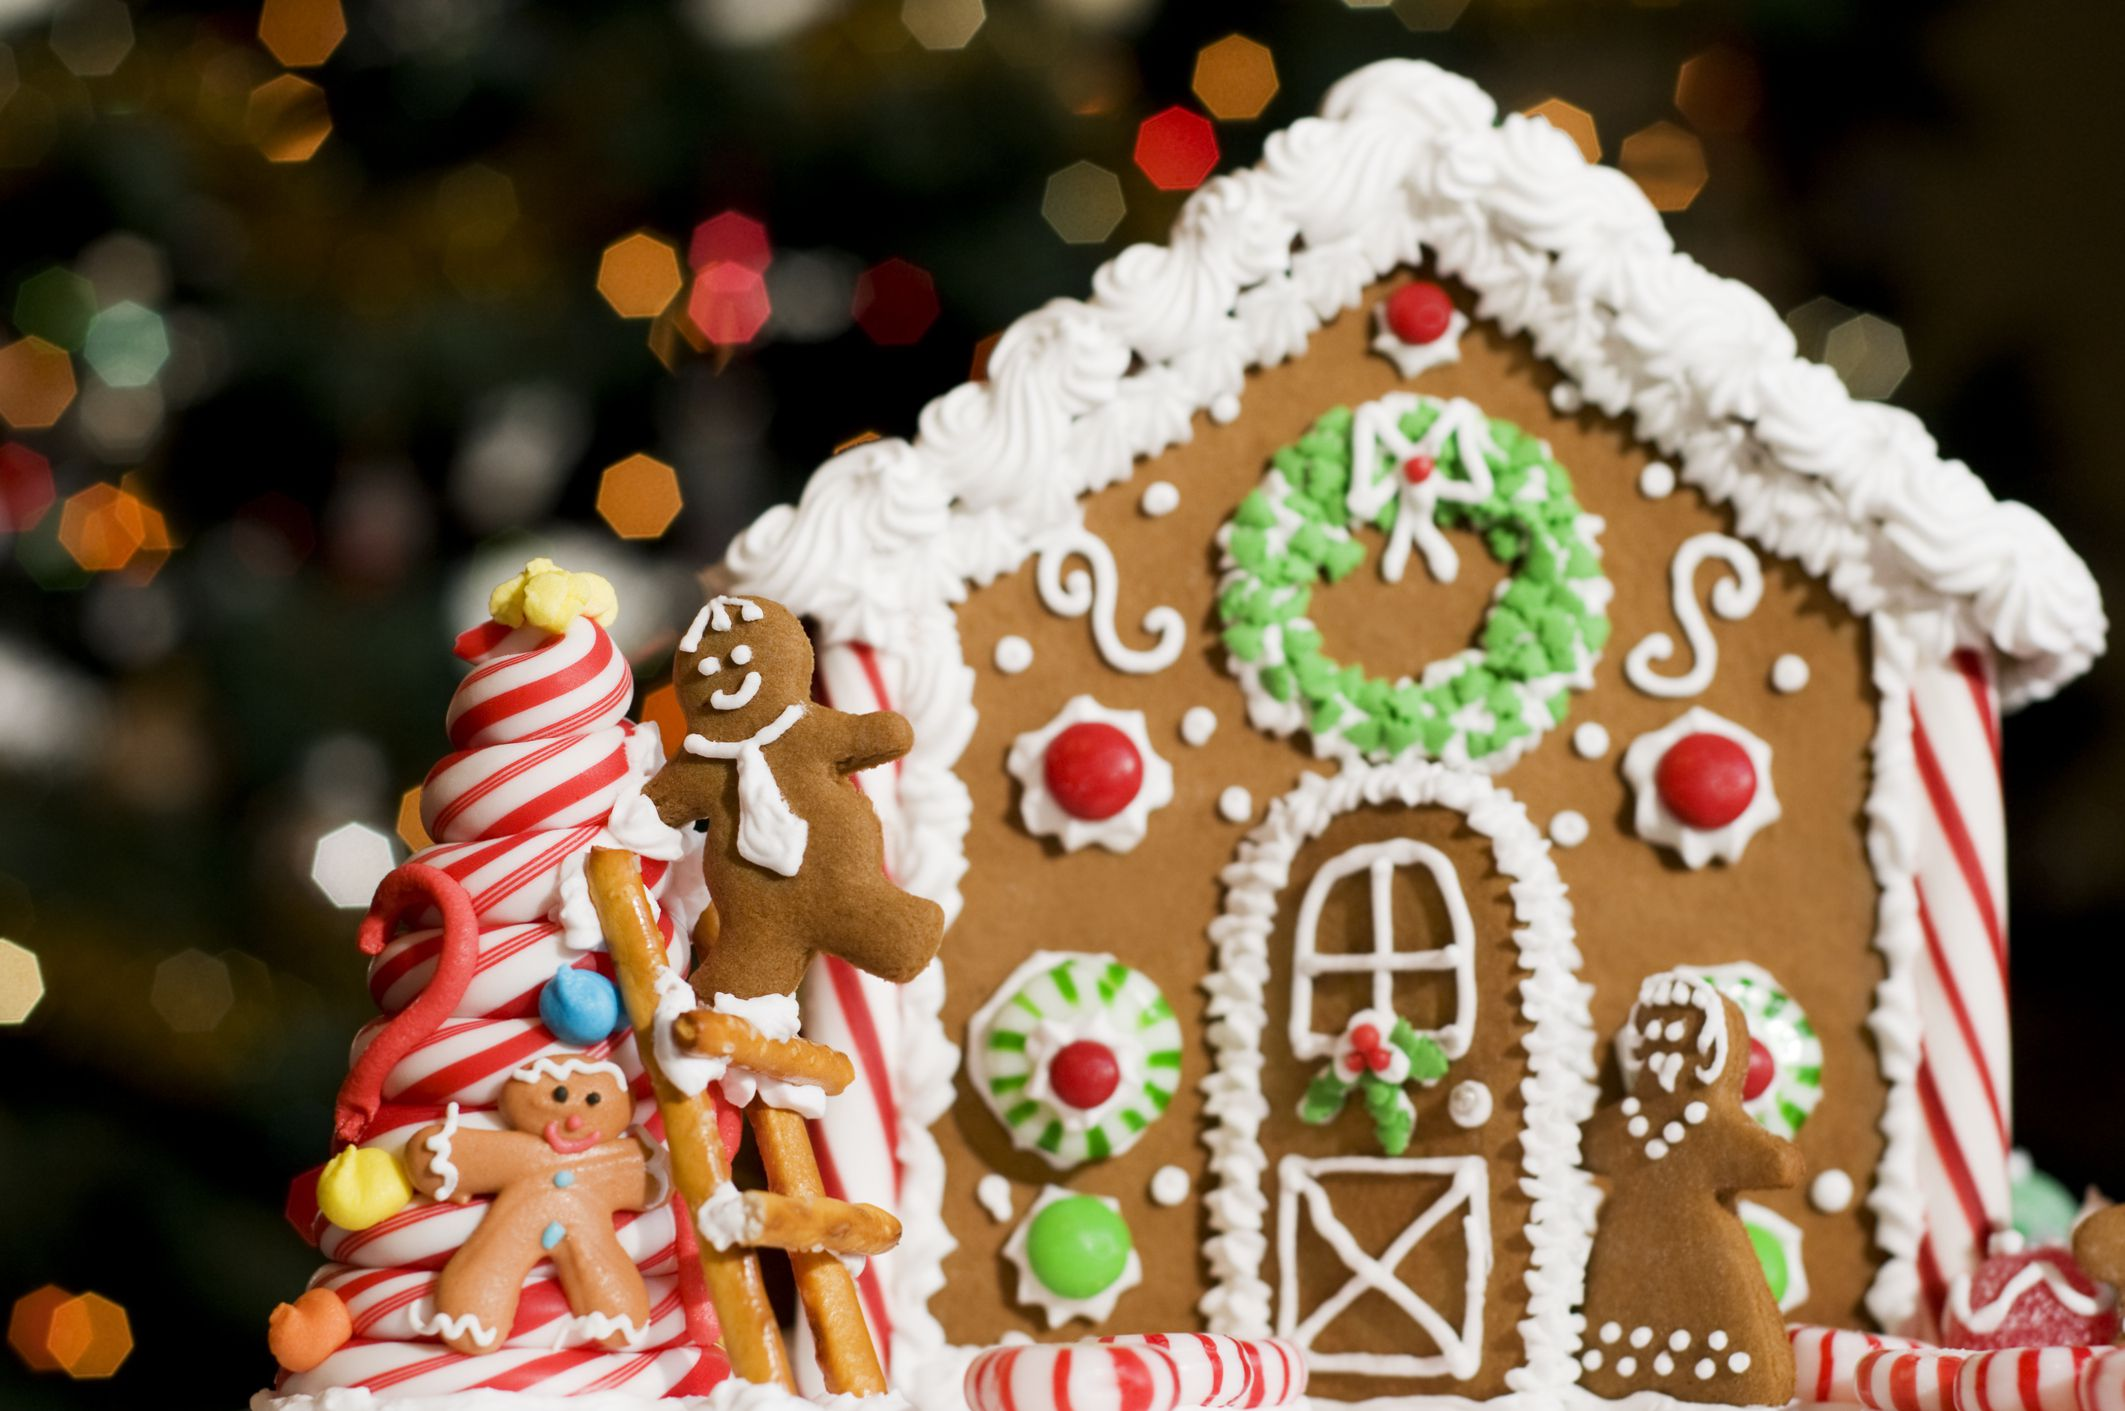 Gingerbread-house-GettyImages-182870806-58cbe8c25f9b581d72b46b05.jpg